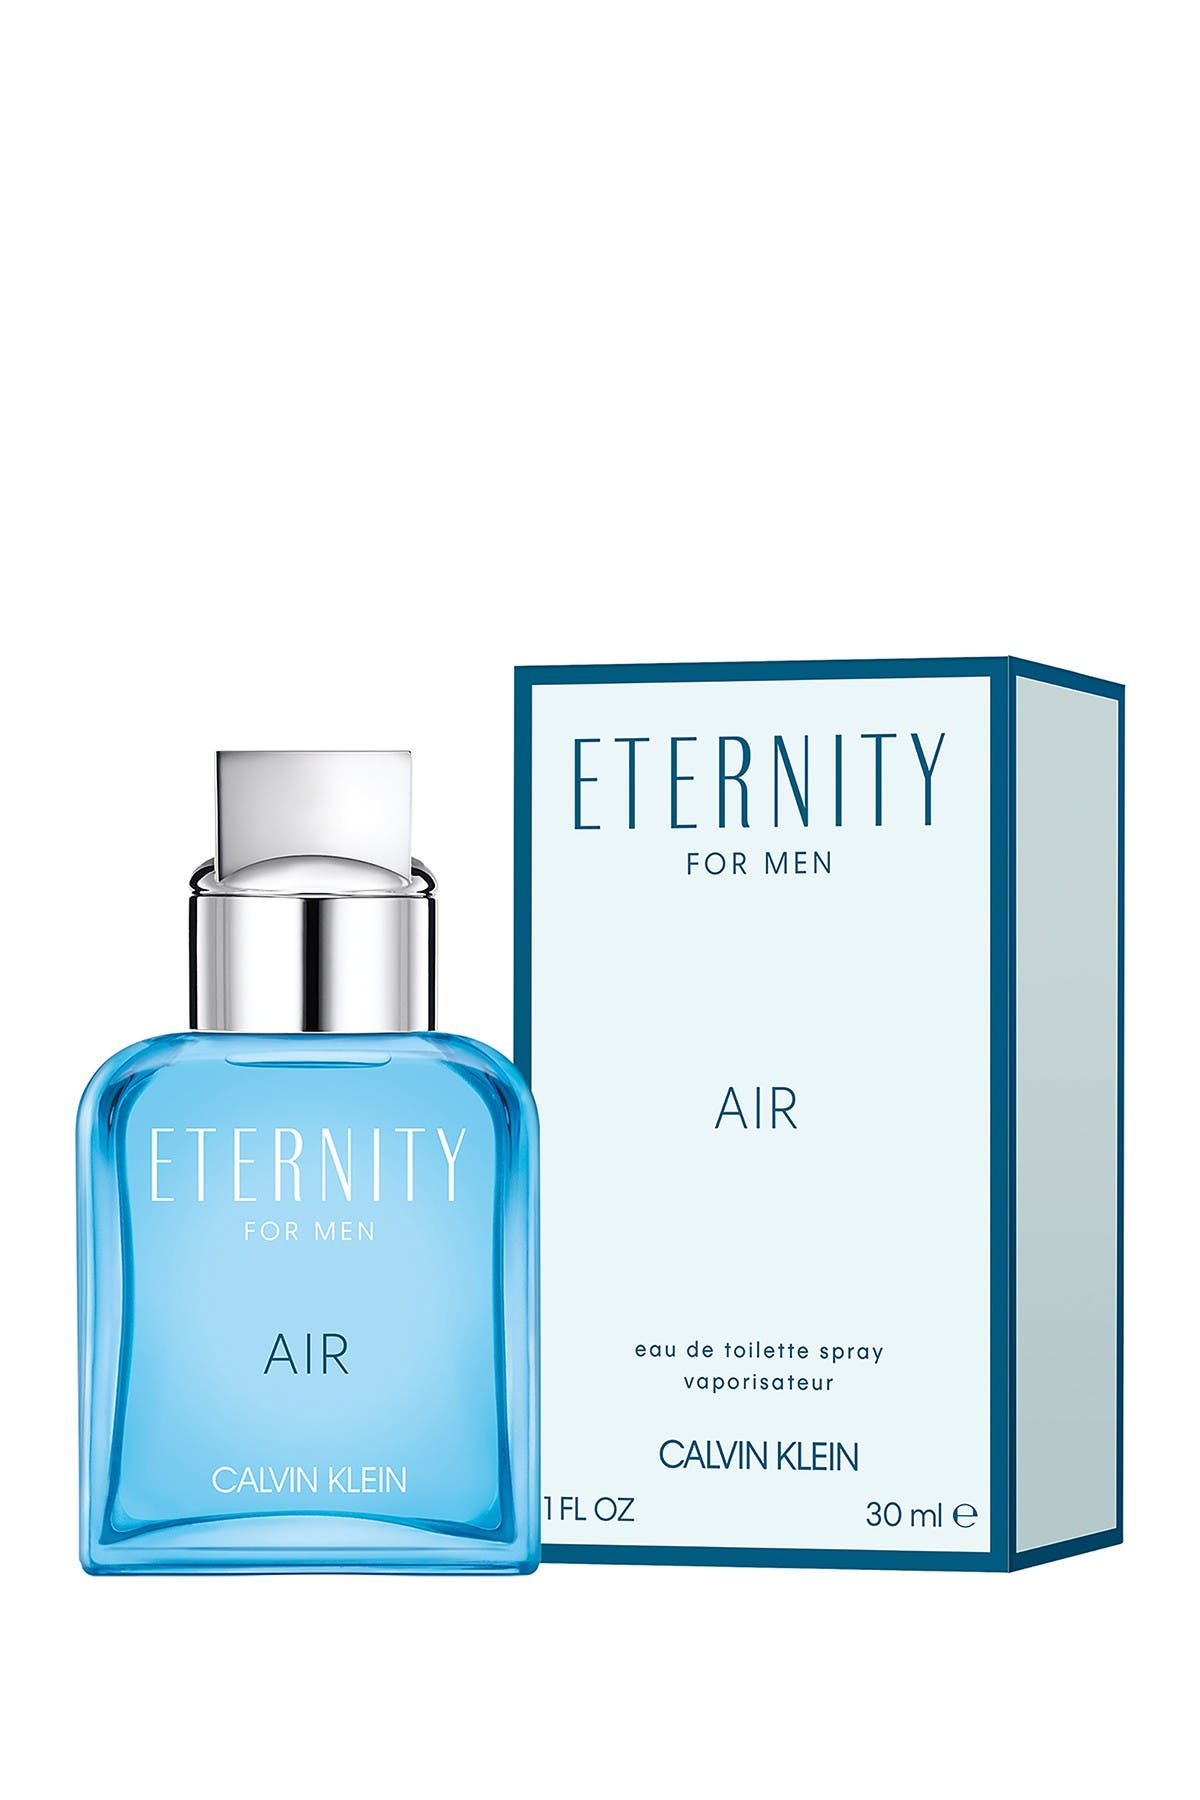 Image of Calvin Klein Eternity Air for Men Eau de Toilette - 30ml.